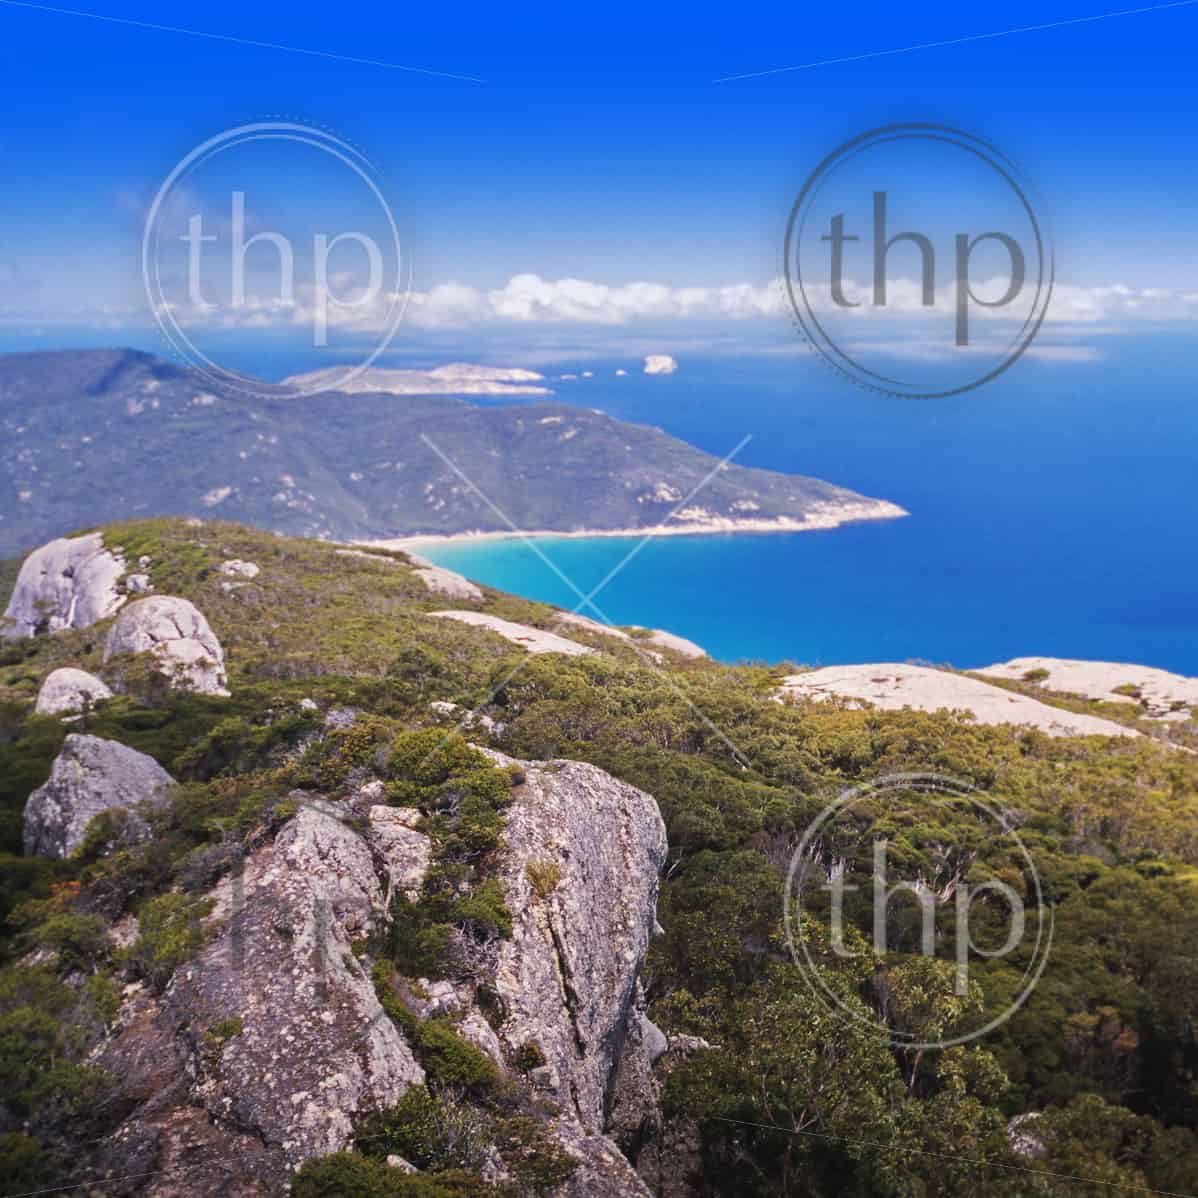 Wilsons Promontory, the most southerly point on the Australian mainland, with clear blue water